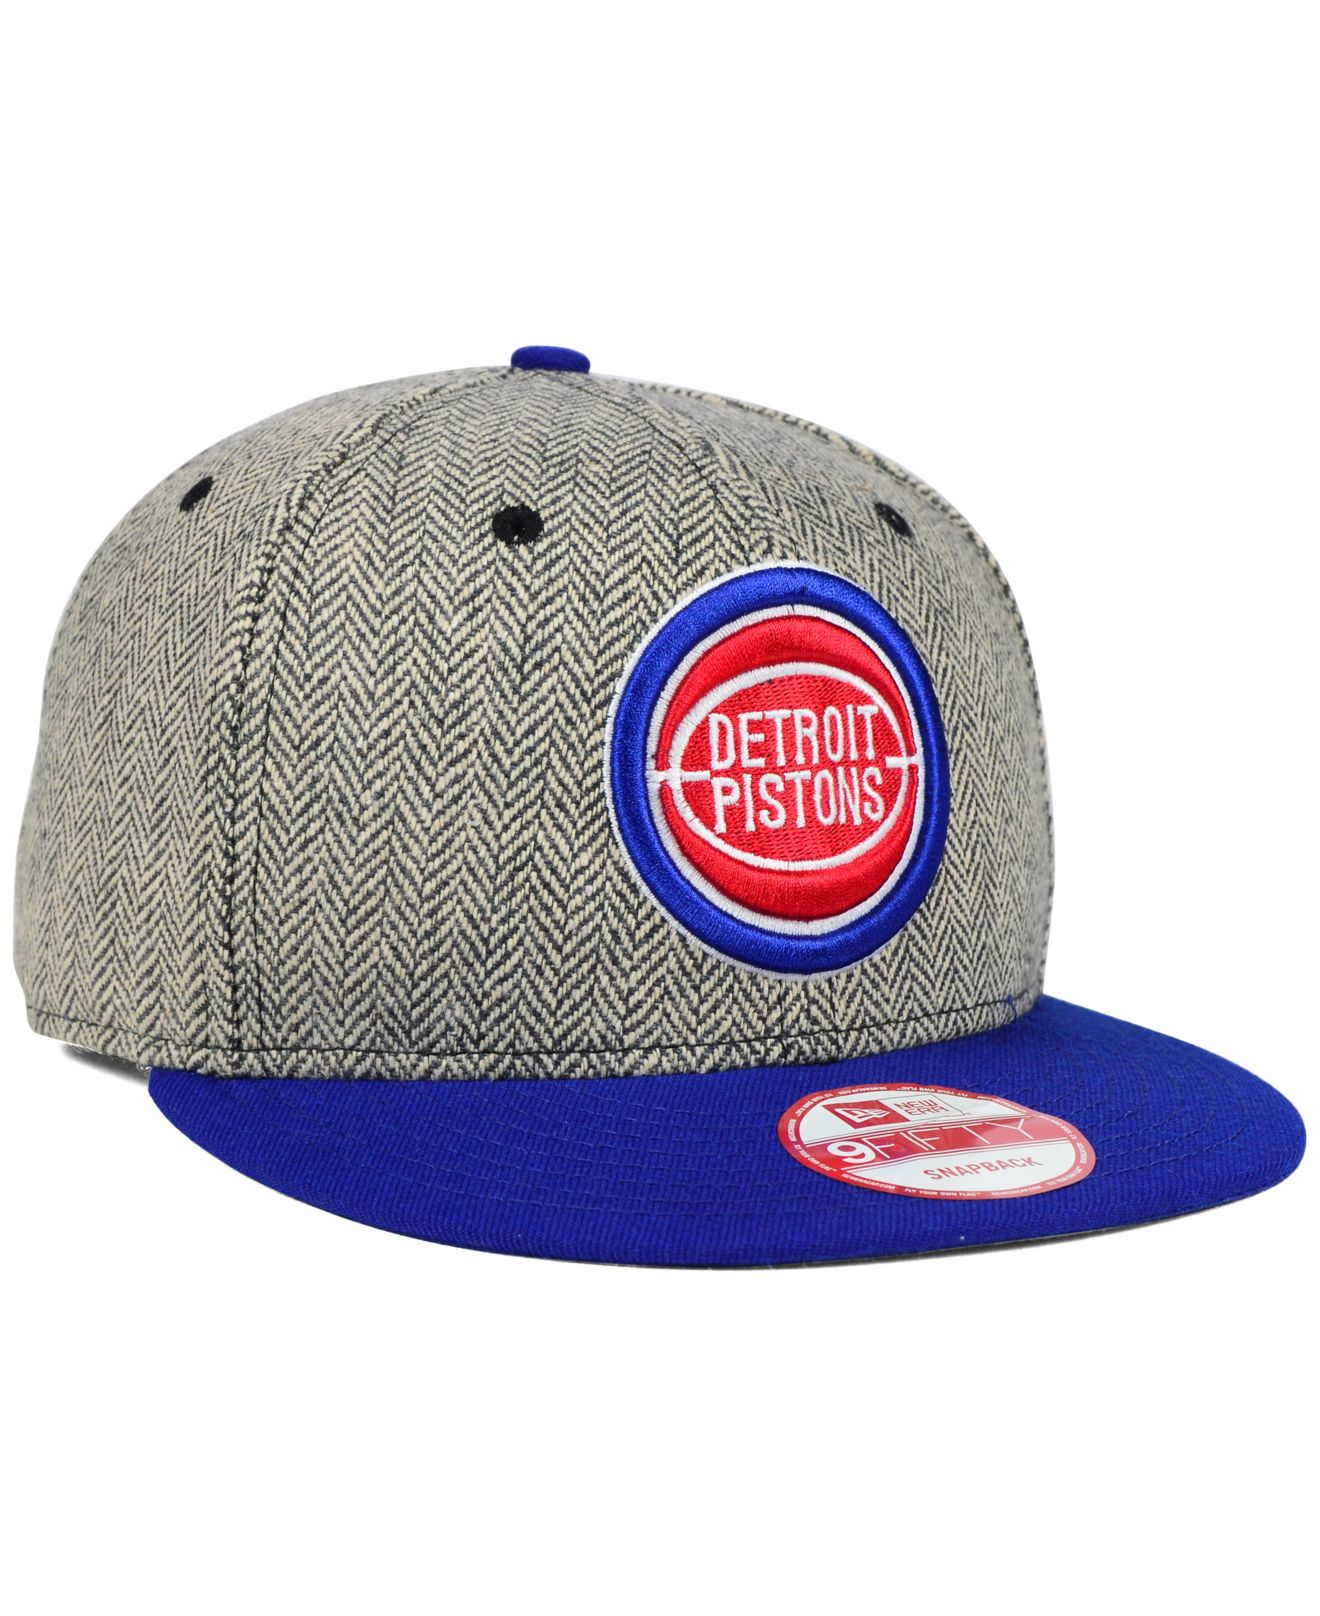 new product e396b 879d3 Lyst - KTZ Detroit Pistons Houndsteam Snapback Cap in Gray for Men